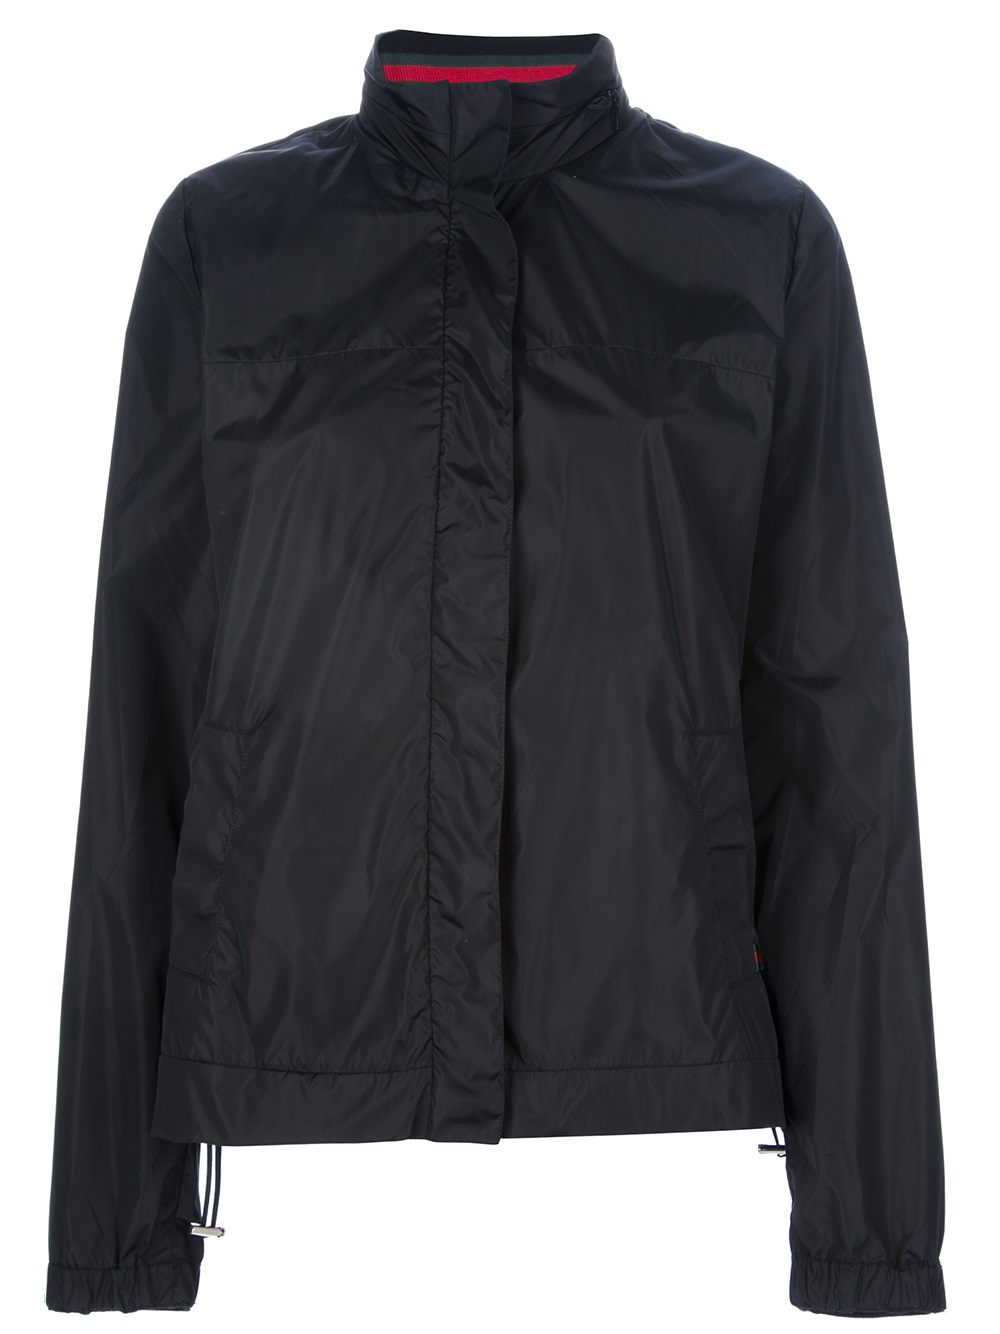 Find great deals on eBay for black windbreaker. Shop with confidence.